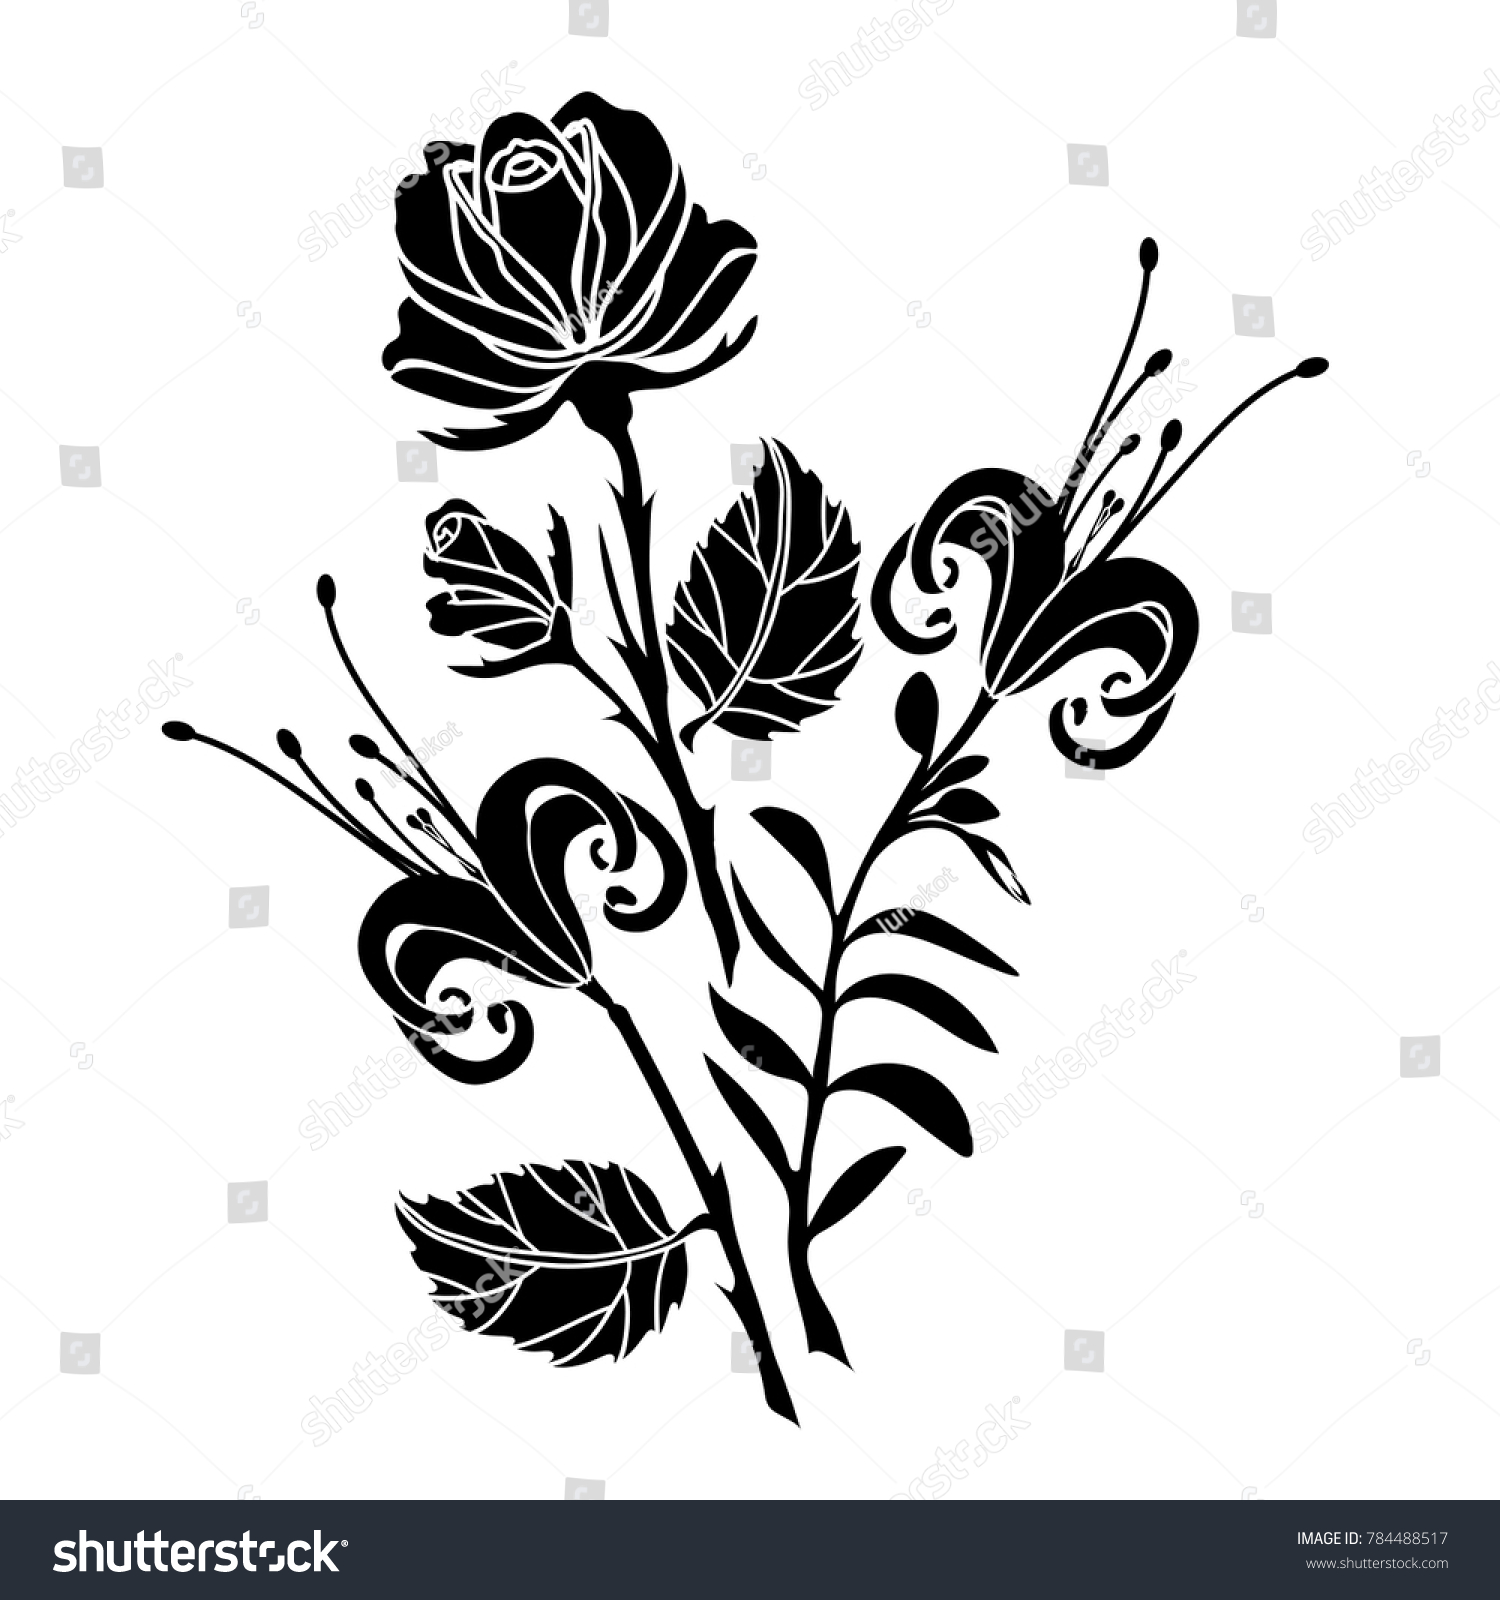 Lily rose tattoo black silhouette flowers stock vector royalty free lily and rose tattoo black silhouette of flowers and leaves on a white background izmirmasajfo